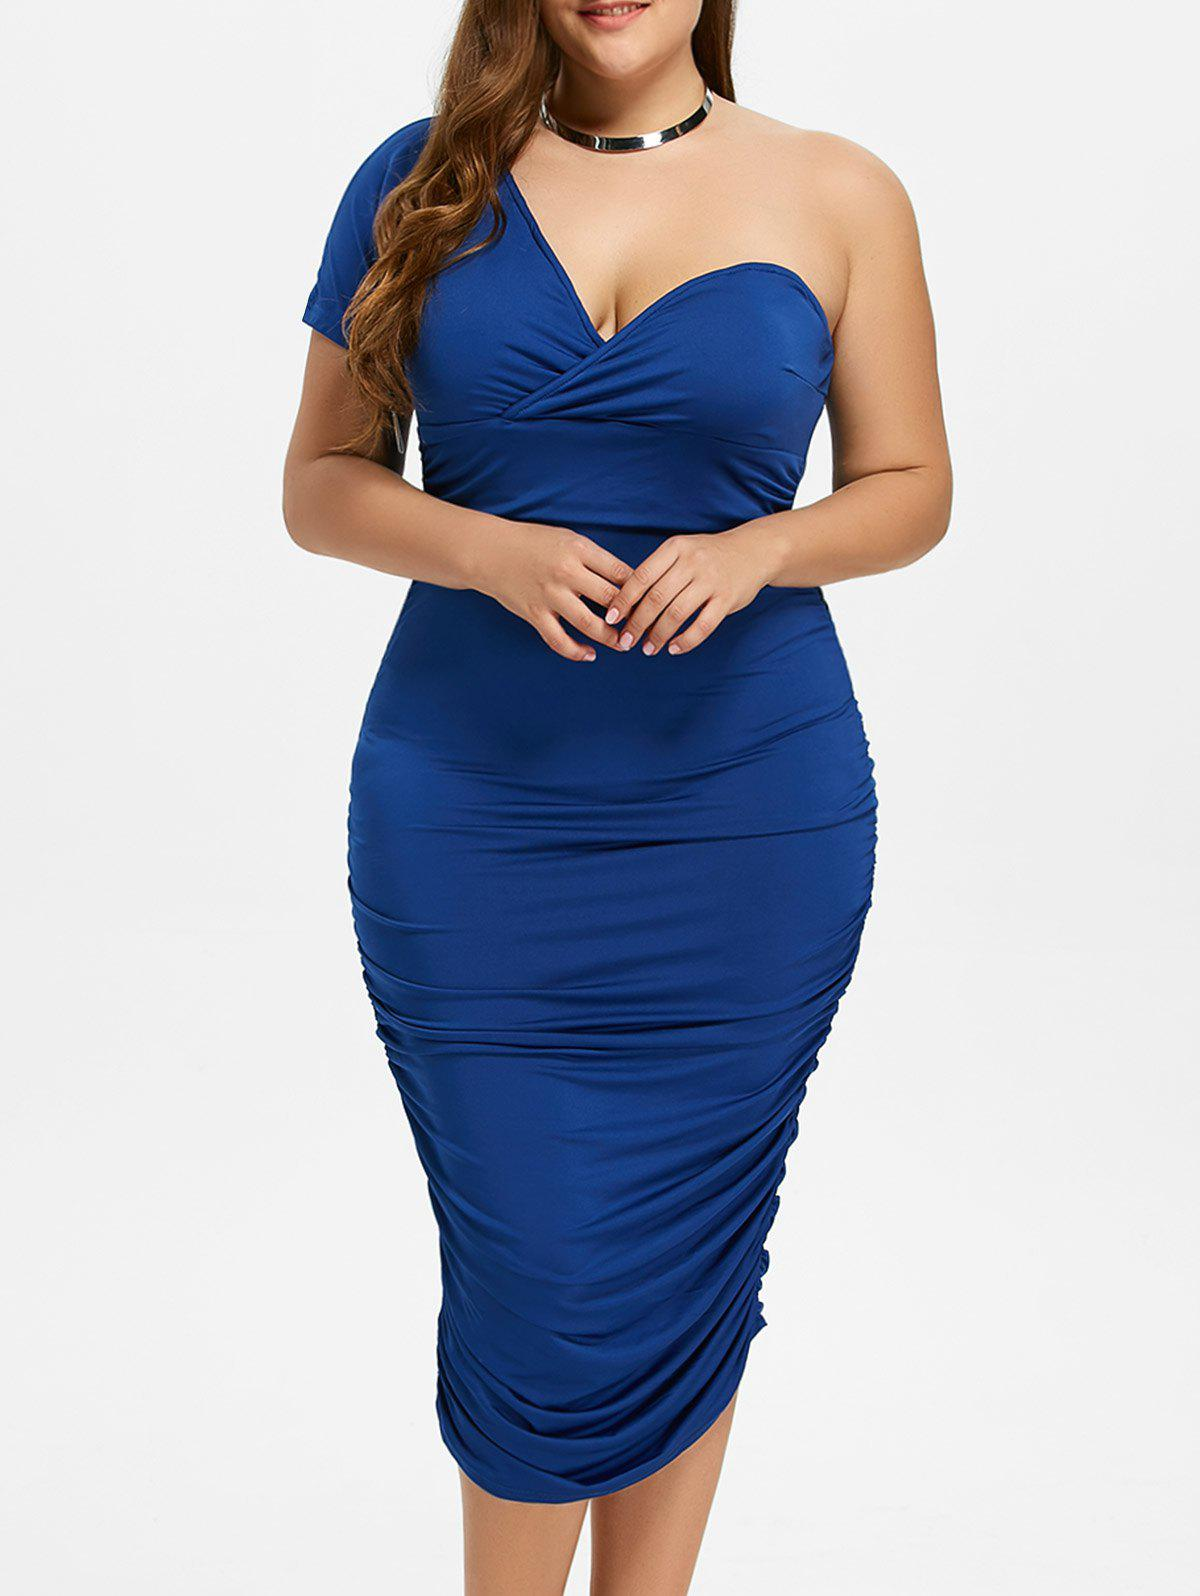 2018 One Shoulder Bodycon Prom Plus Size Cocktail Bandage Dress